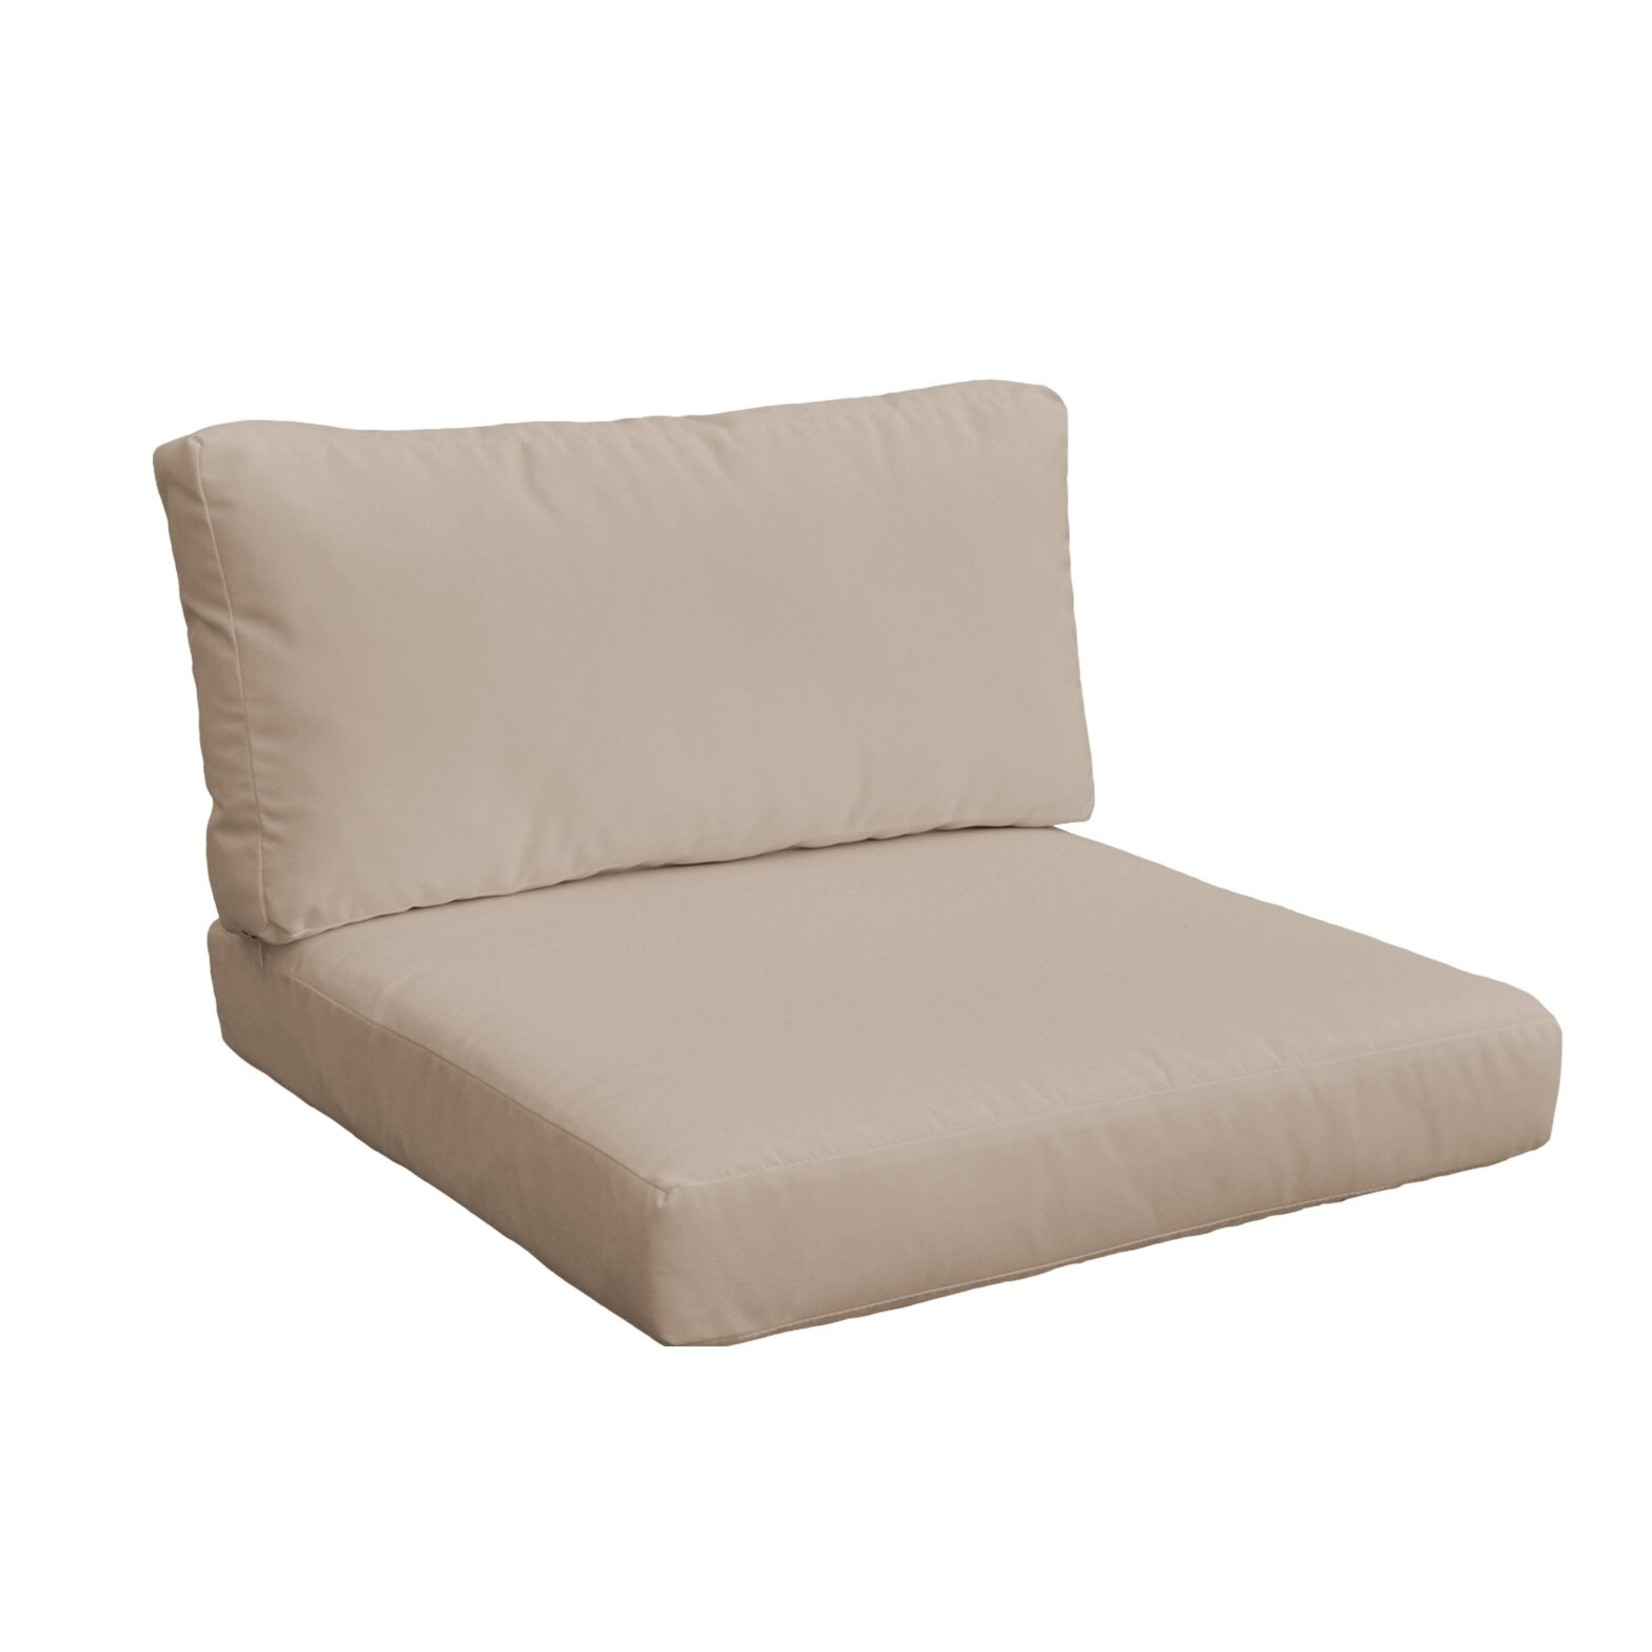 *6 Piece Outdoor Cushion Cover - Beige - Covers Only - Final Sale